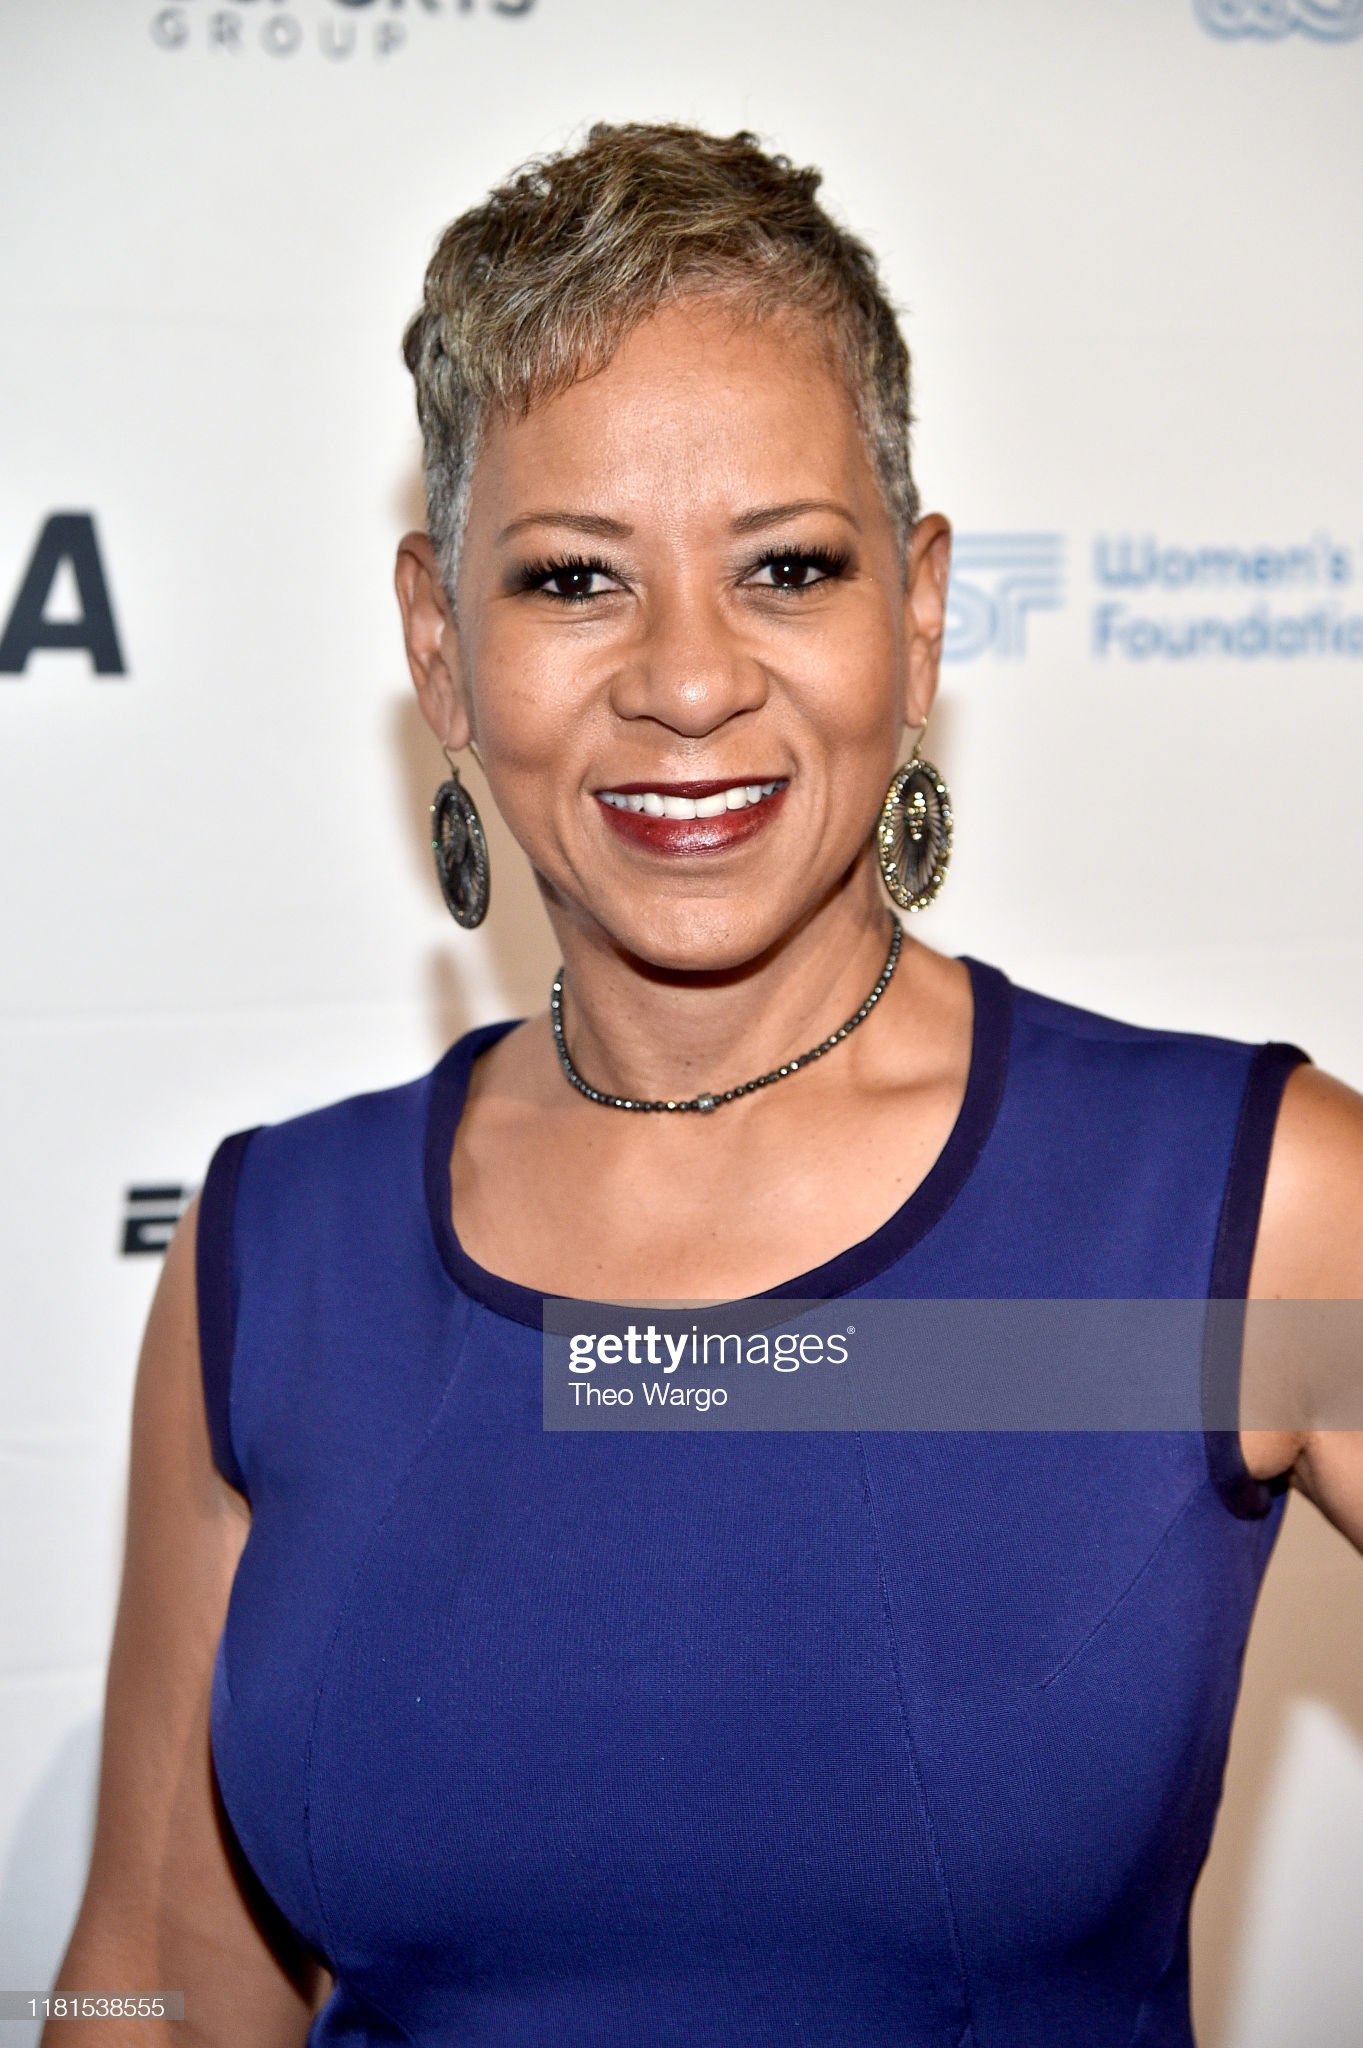 The Women's Sports Foundation's 40th Annual Salute To Women In Sports Awards Gala - Arrivals : News Photo